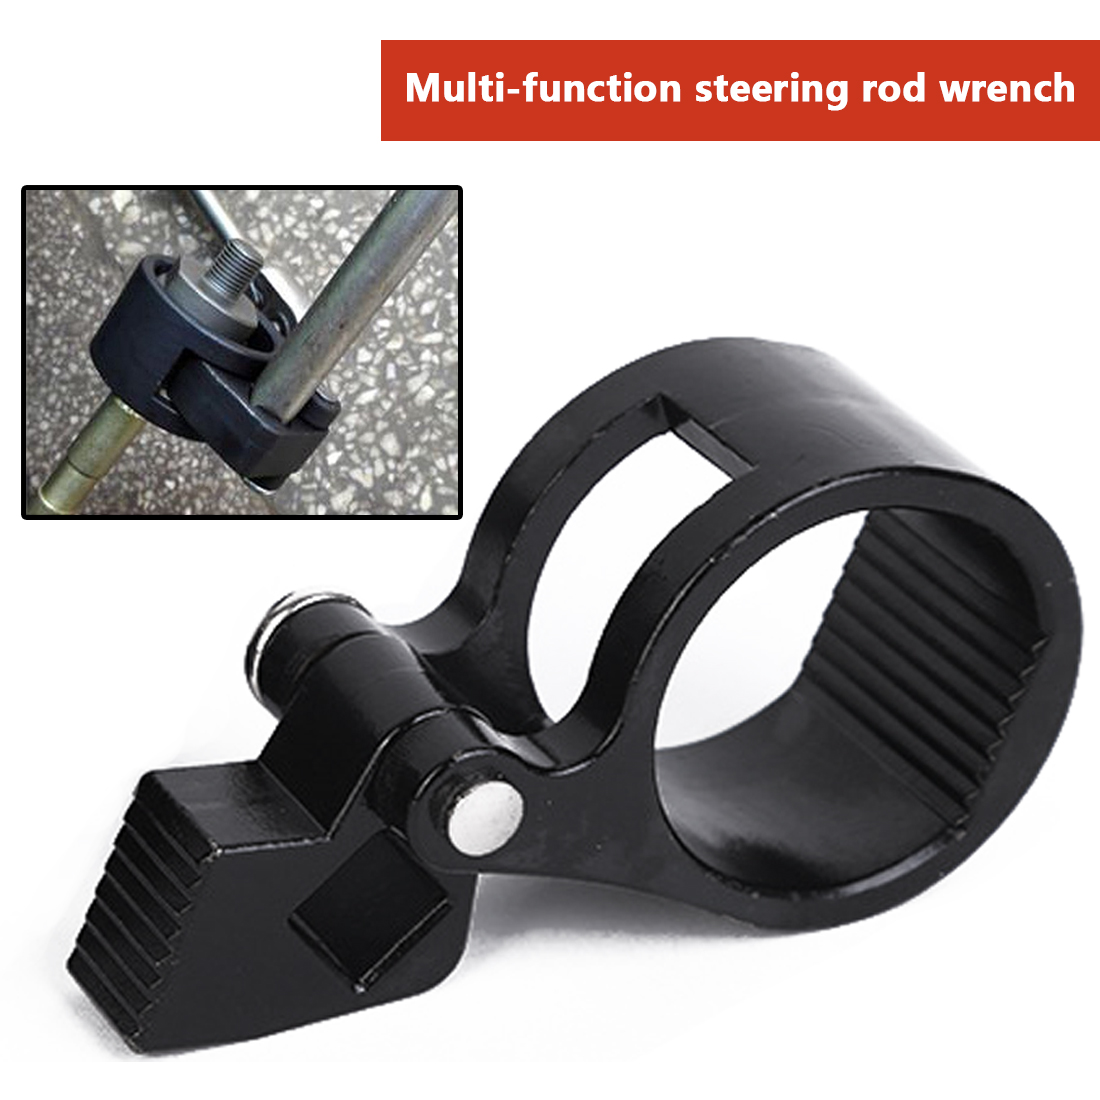 Car Steering Rudder Tie Rod Wrench Rudder Ball Joint Removal Wrench Universal Steering Track Rod Removal Hand Tool